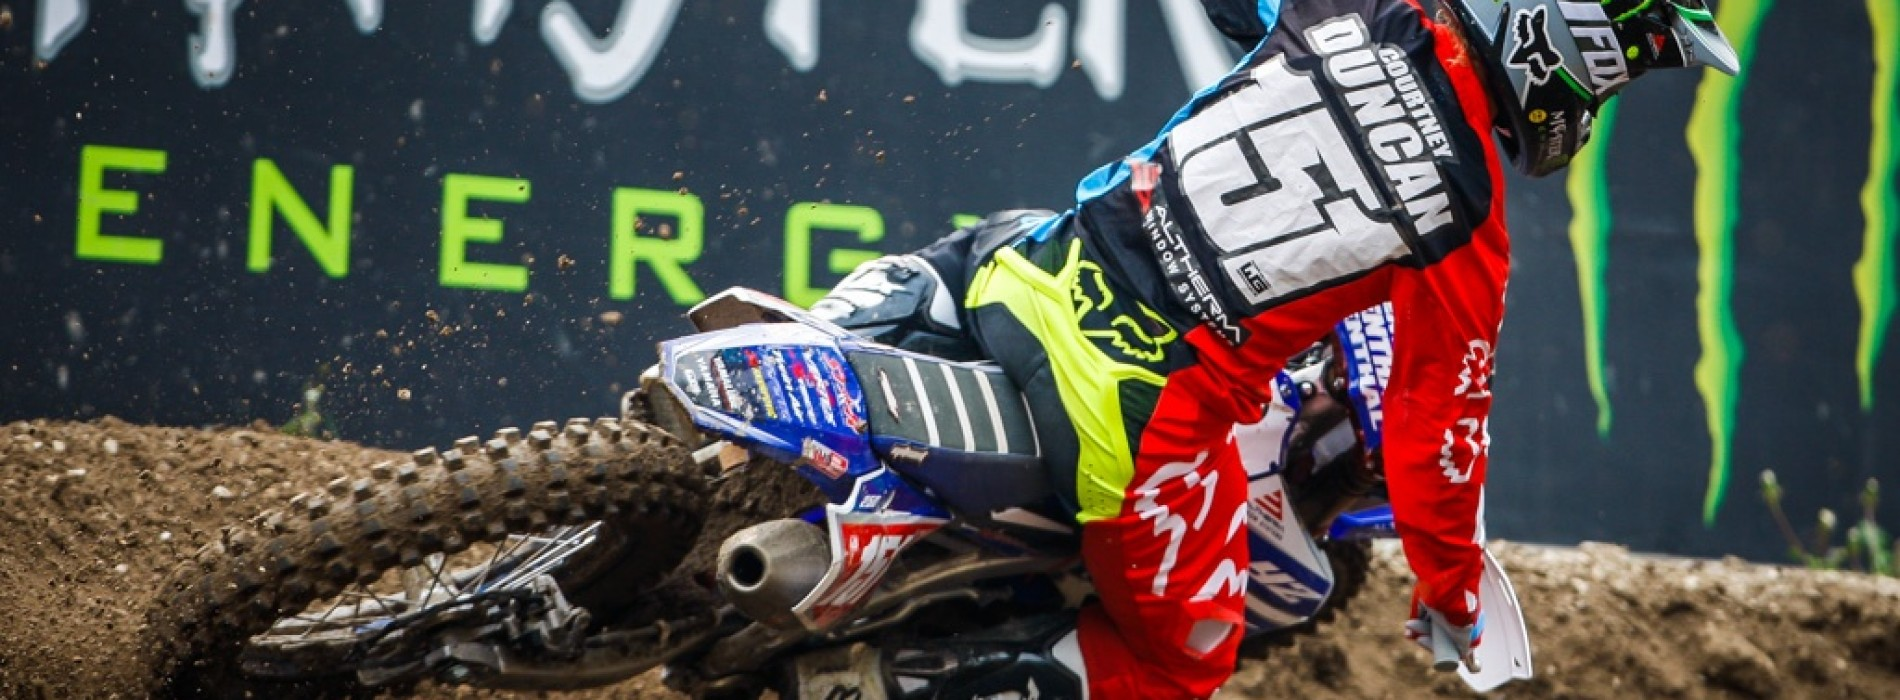 Women's World MX Championship Round 2